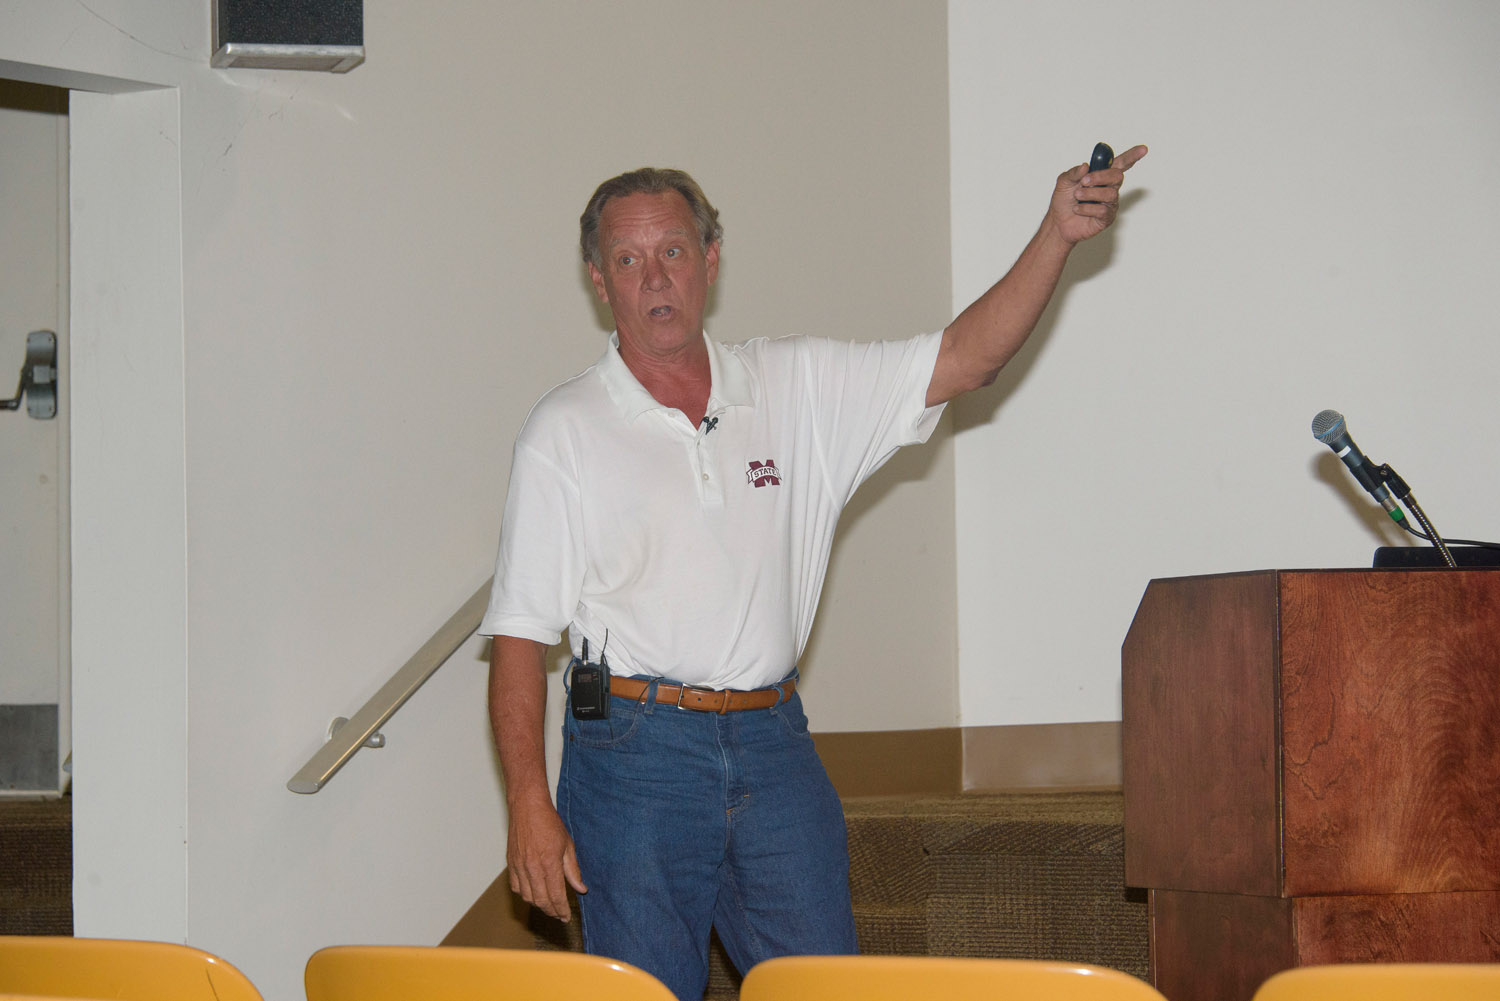 A man wears a white polo shirt with a Mississippi State University emblem on the right breast pocket, and his arm is lifted and pointing right.